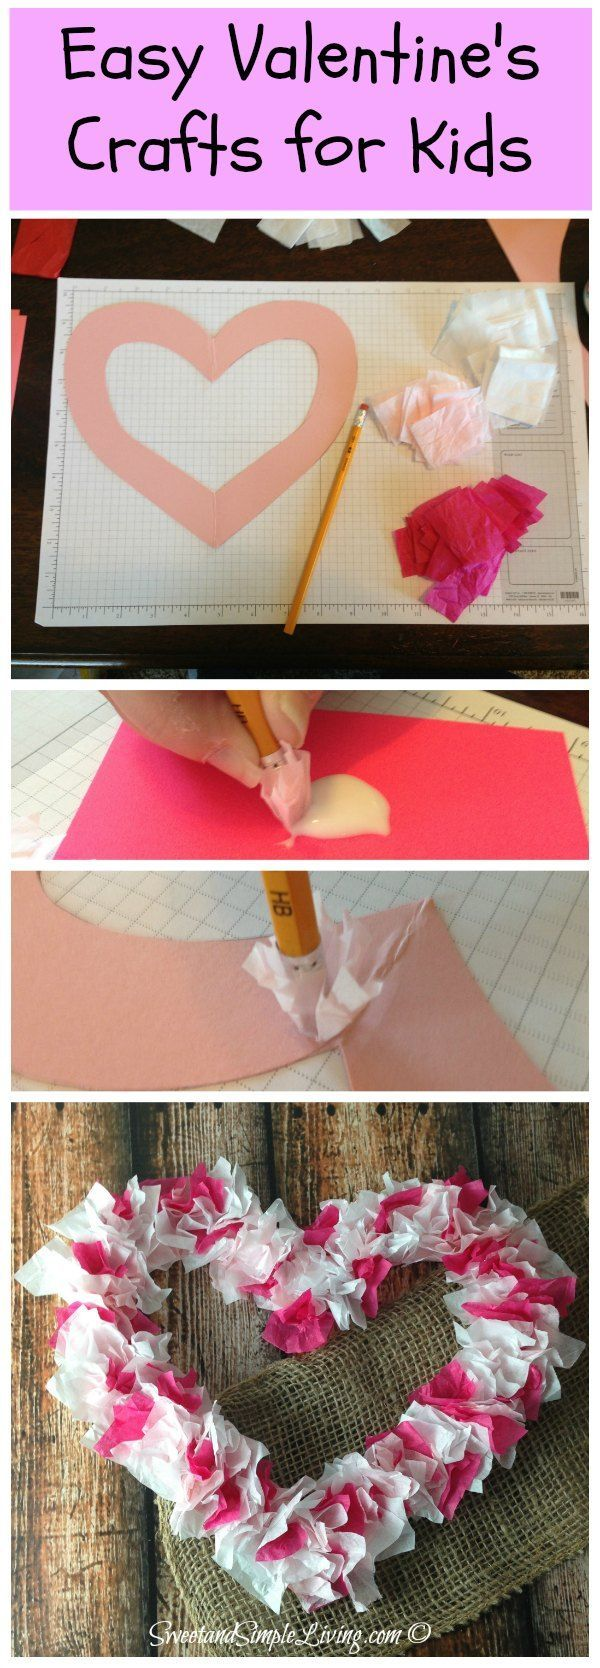 DIY Valentines Crafts for Kids - Cute and Easy Paper Decorations. We just love this heart  made with tissue paper